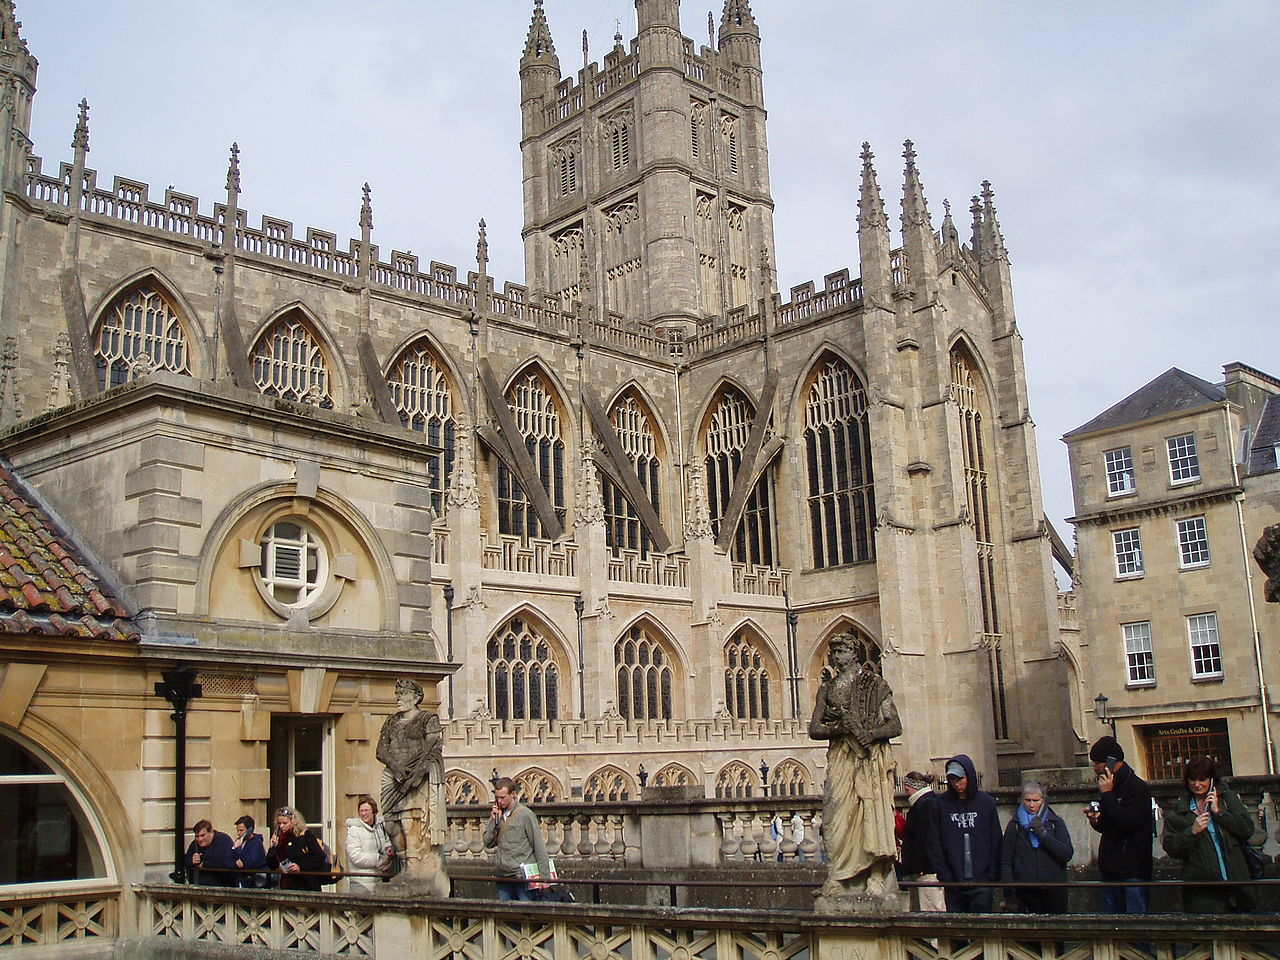 1280px-Bath_Abbey_From_Roman_Baths_Gallery